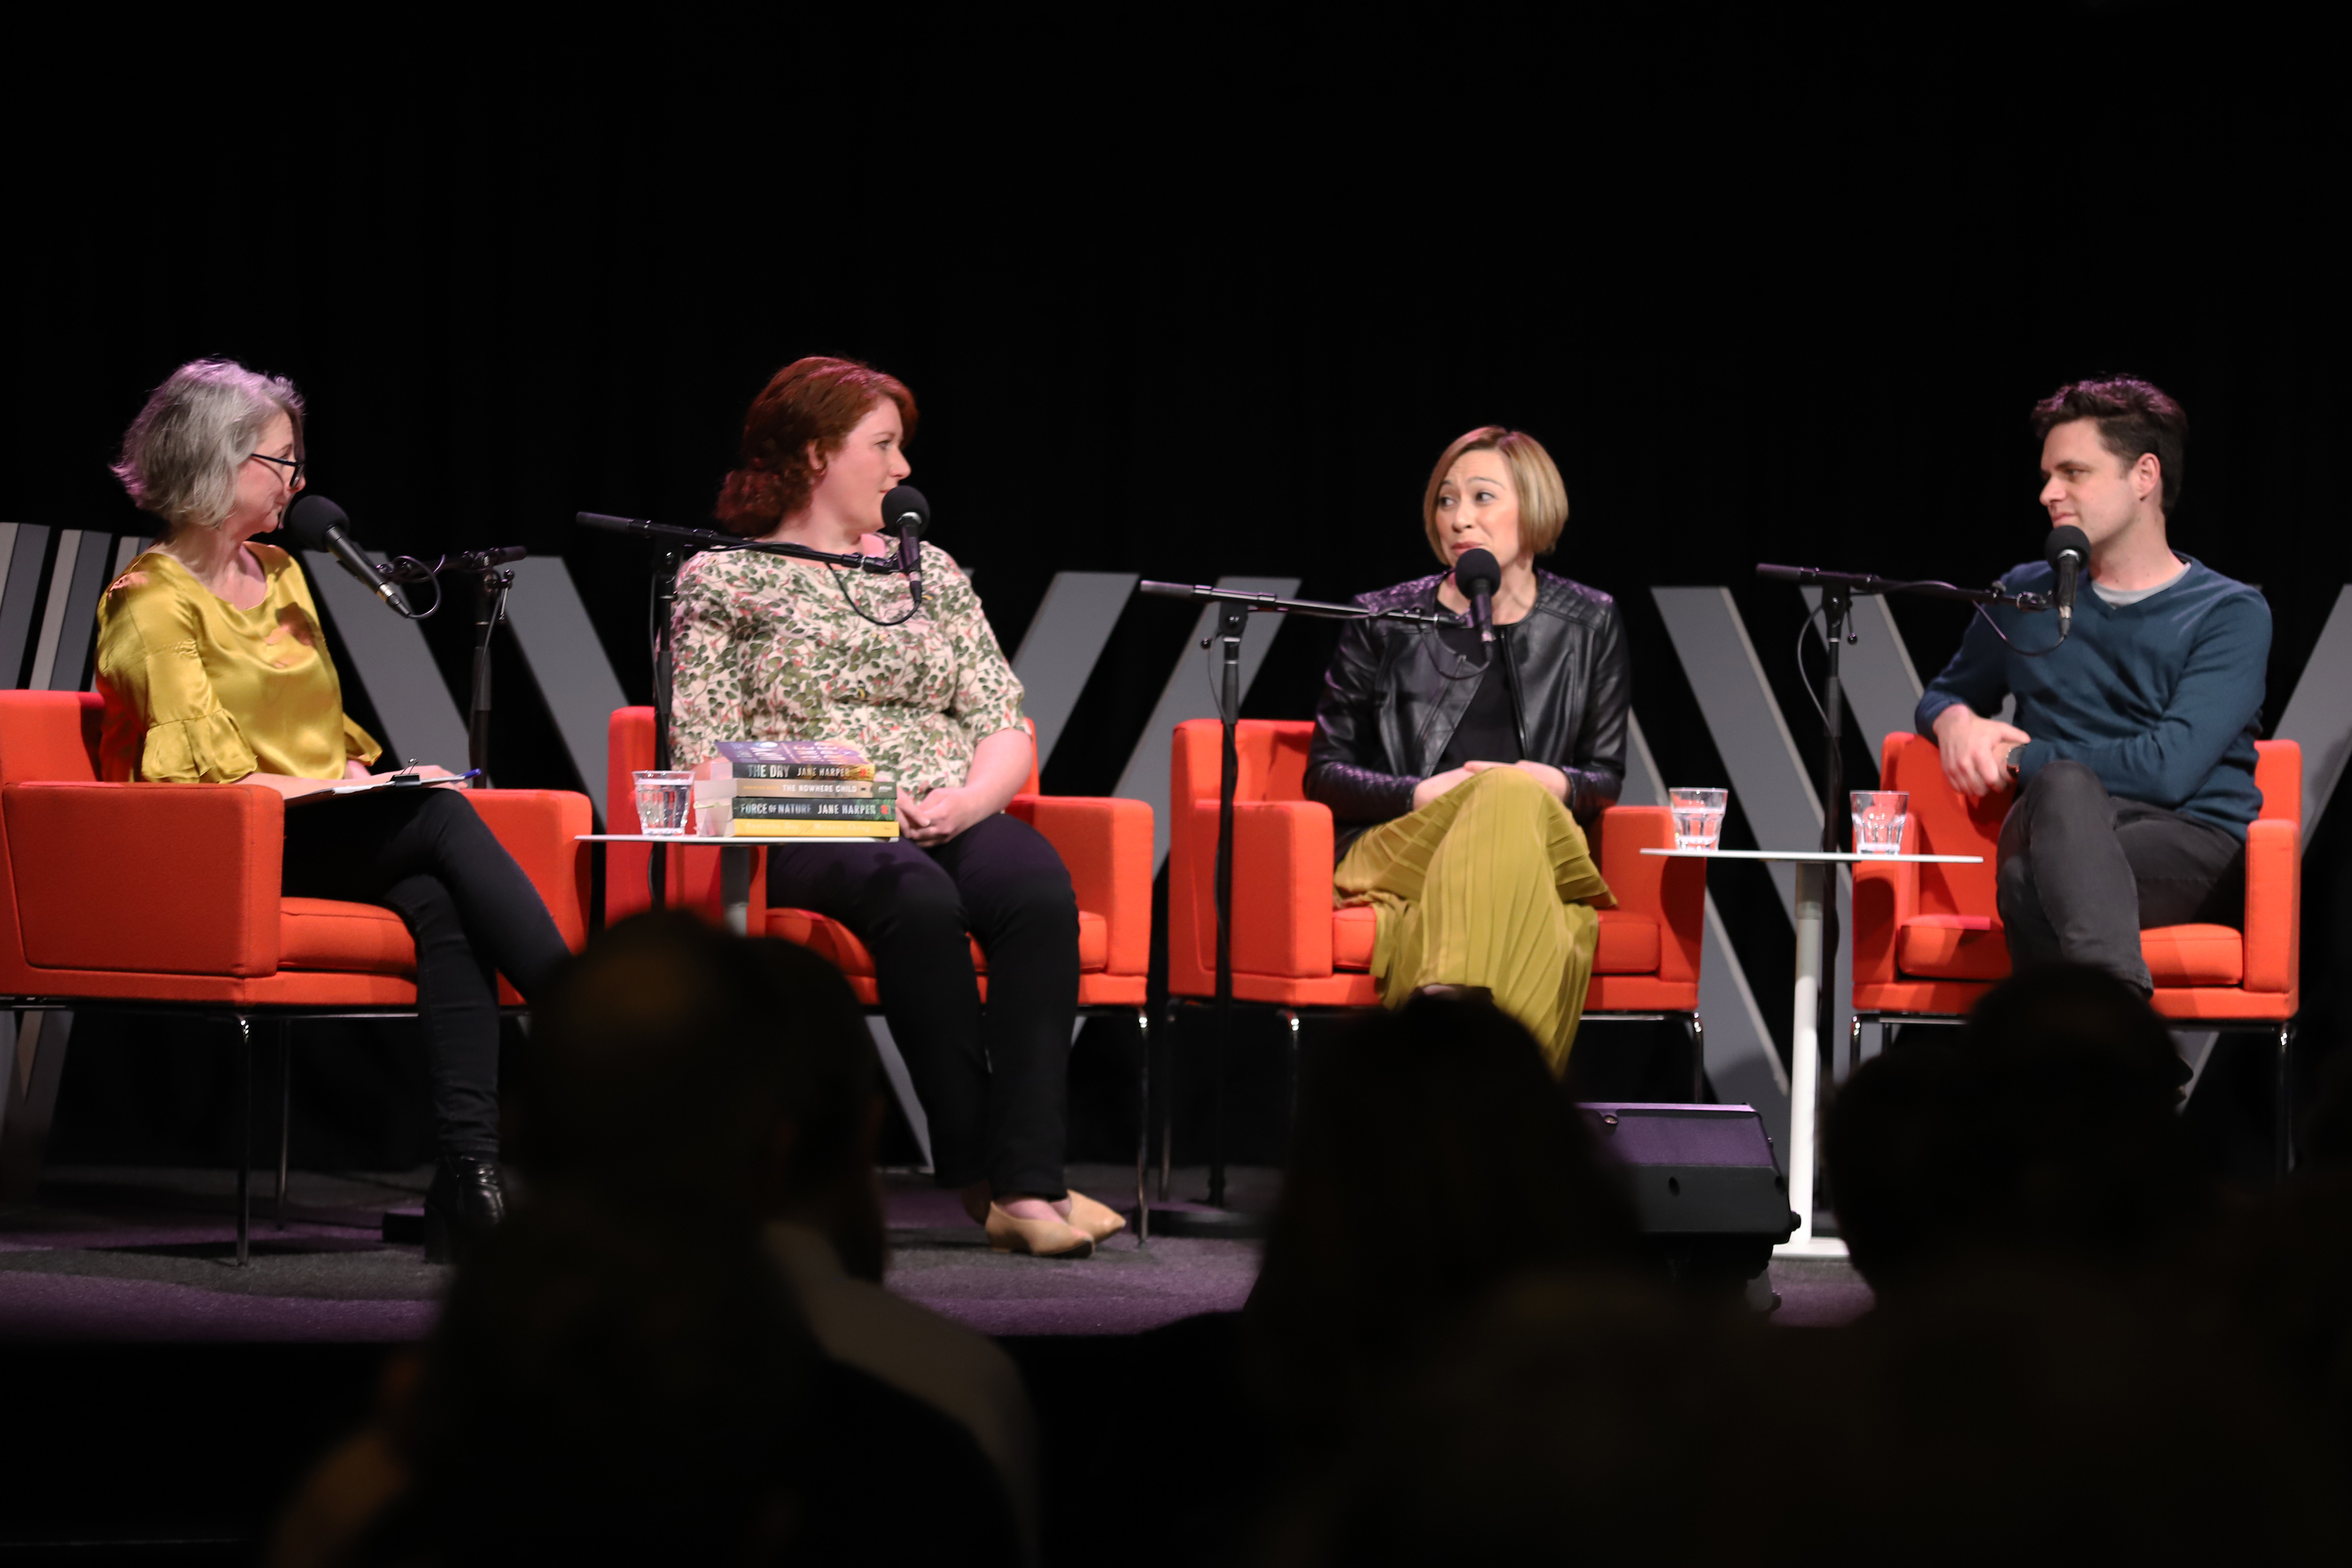 Photograph of the panellists on stage